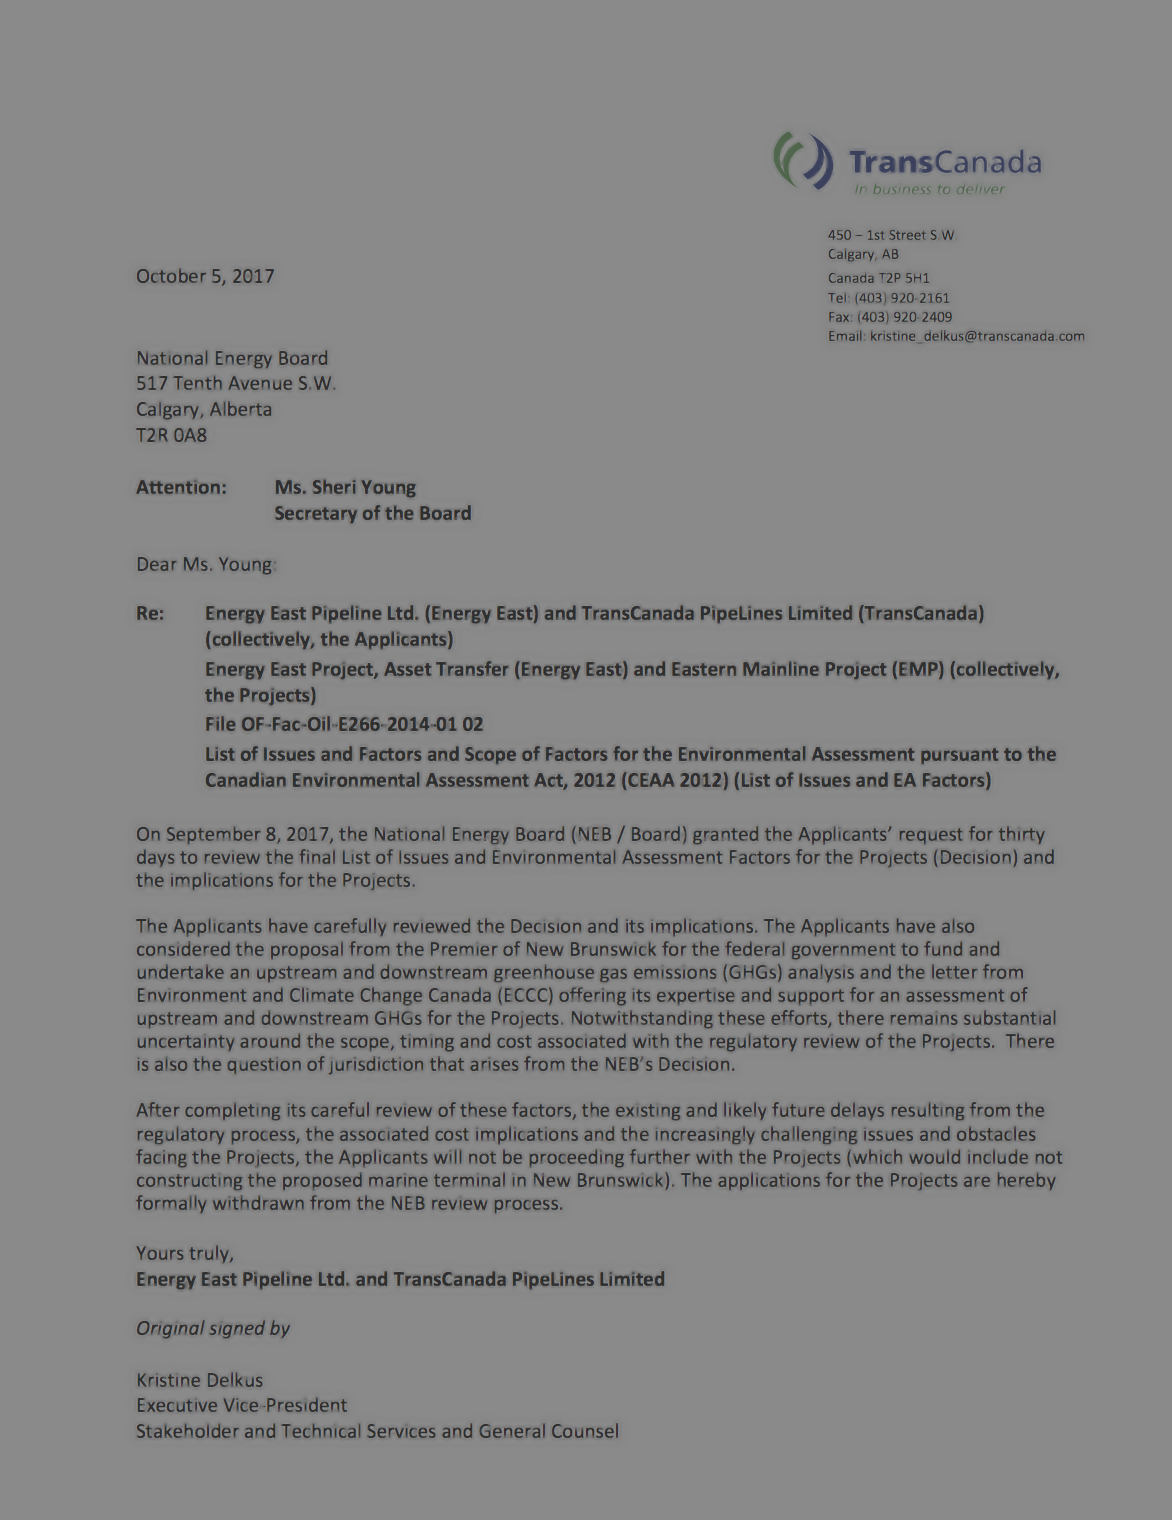 TRANSCANADA'S NOTICE OF WITHDRAWAL -